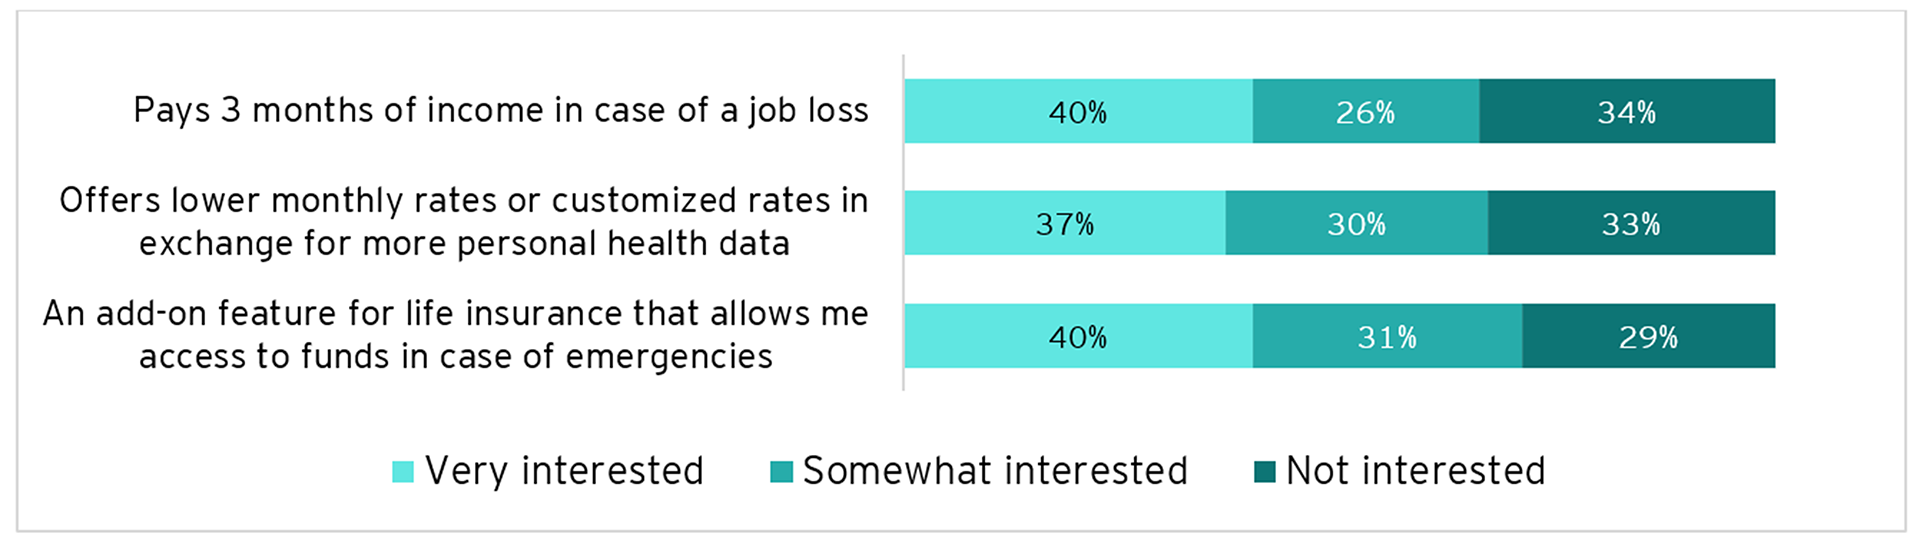 Graph: How interested are you in the following types of insurance?